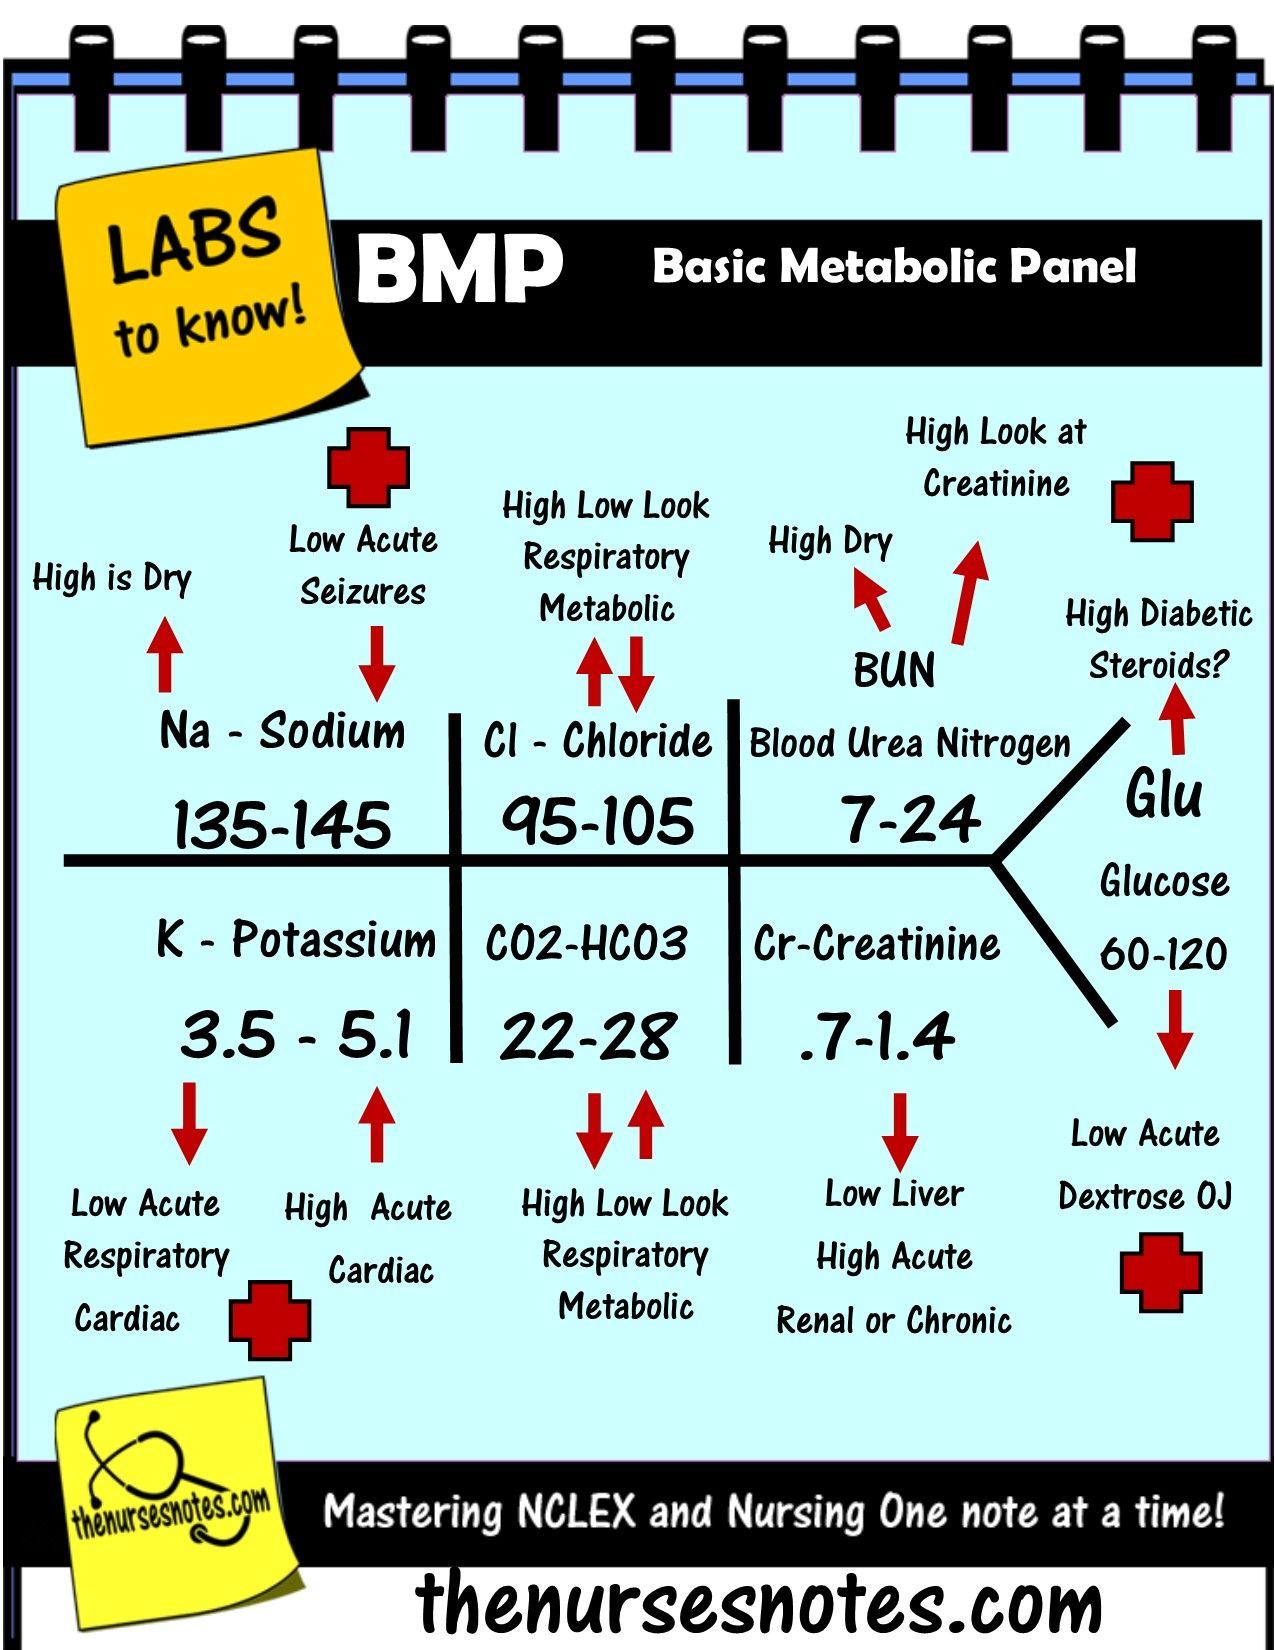 Bmp Chem7 Fishbone Diagram Explaining Labs